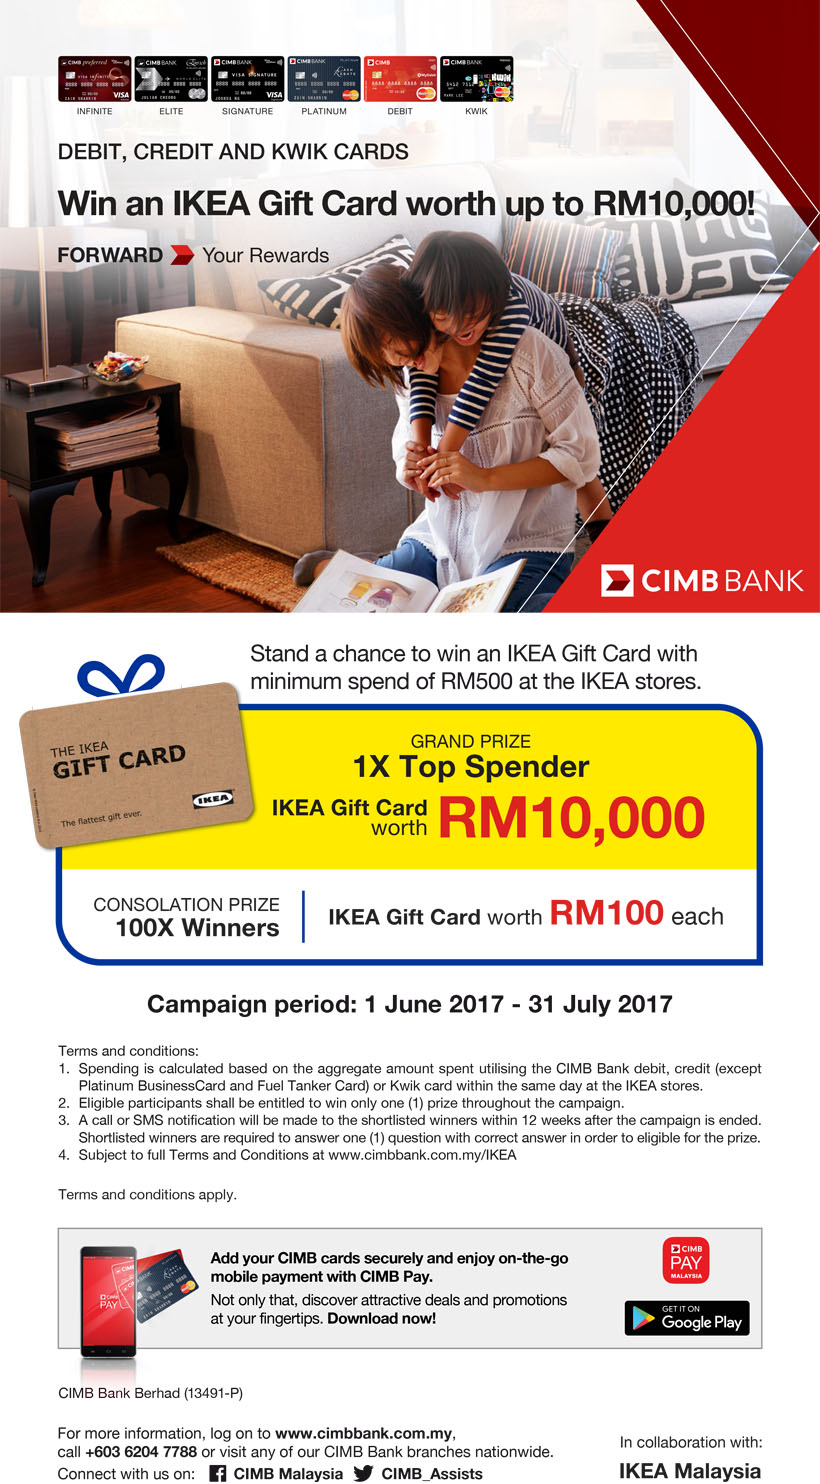 CIMB promo, Win an IKEA Gift Card worth up to RM10,000!